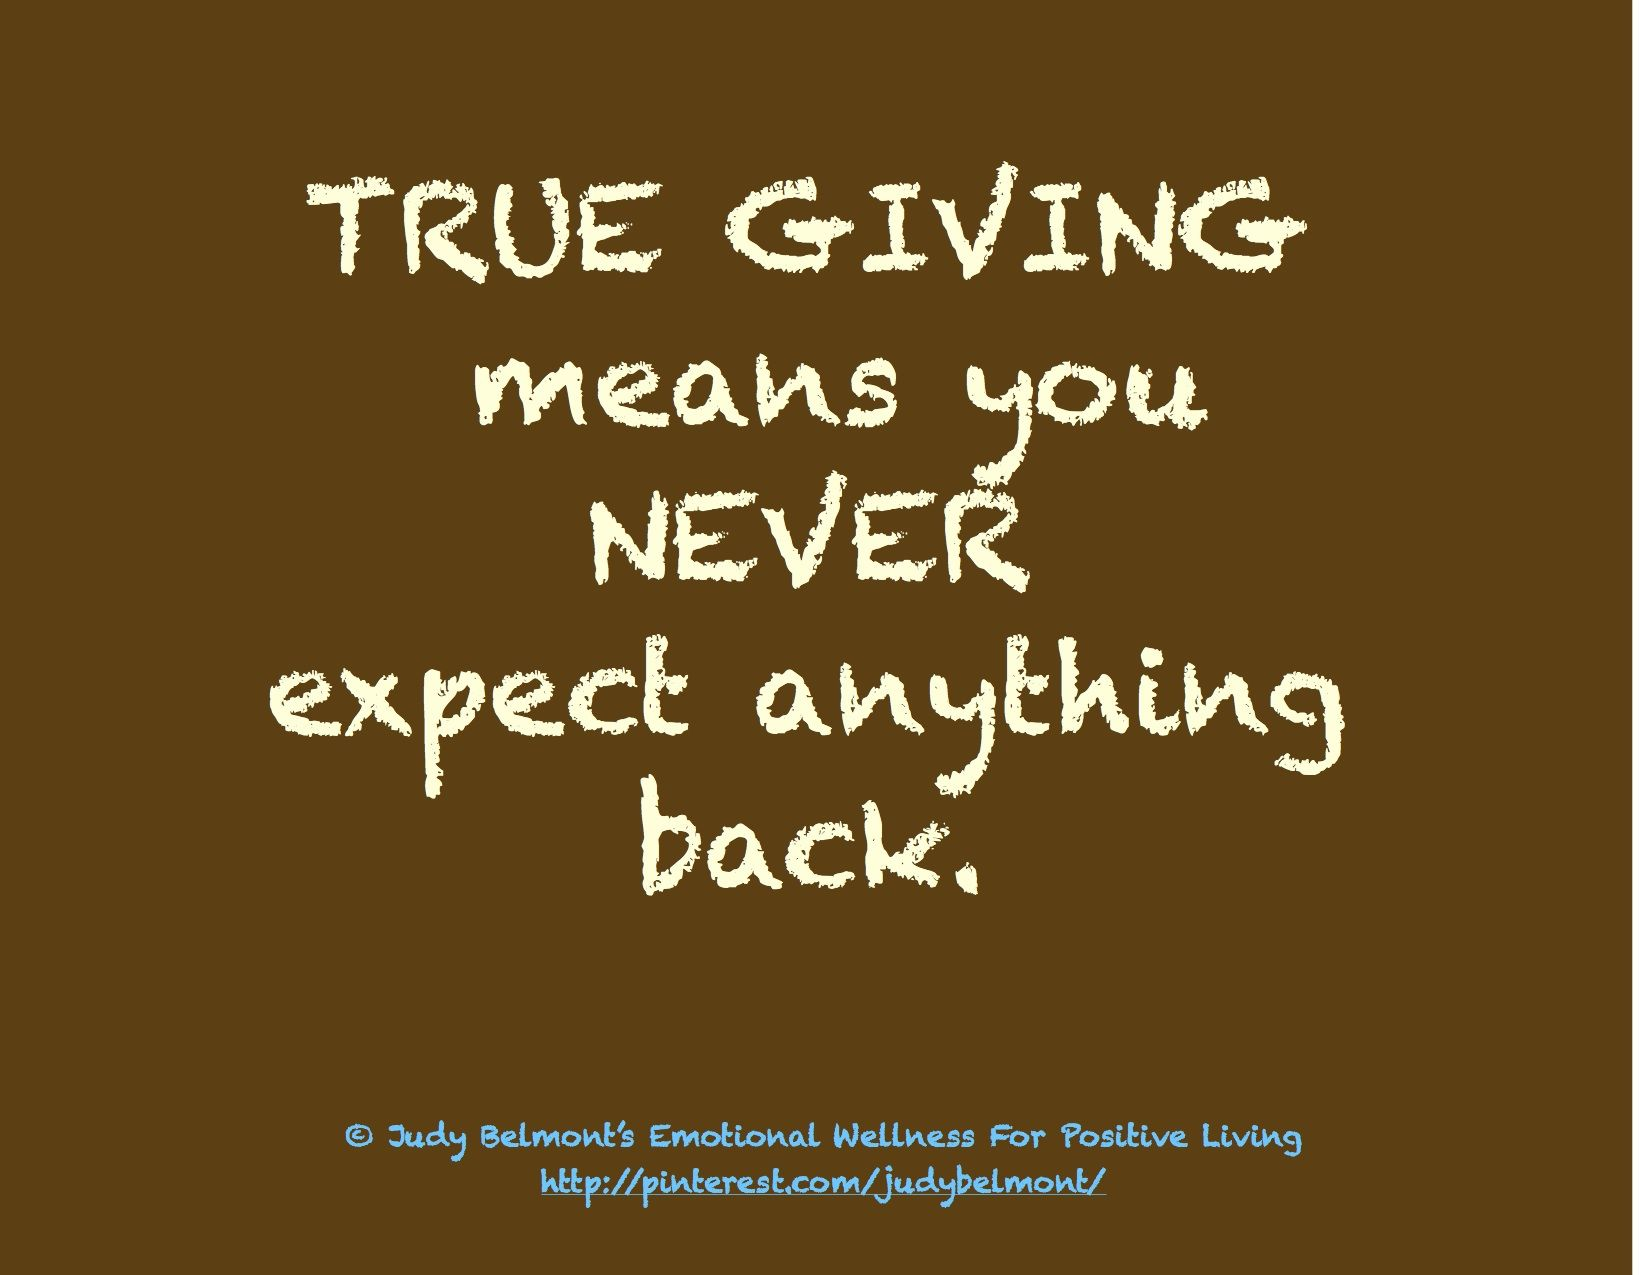 Quotes On Giving Back True Giving Means You Never Get Anything Back  Daily Positive